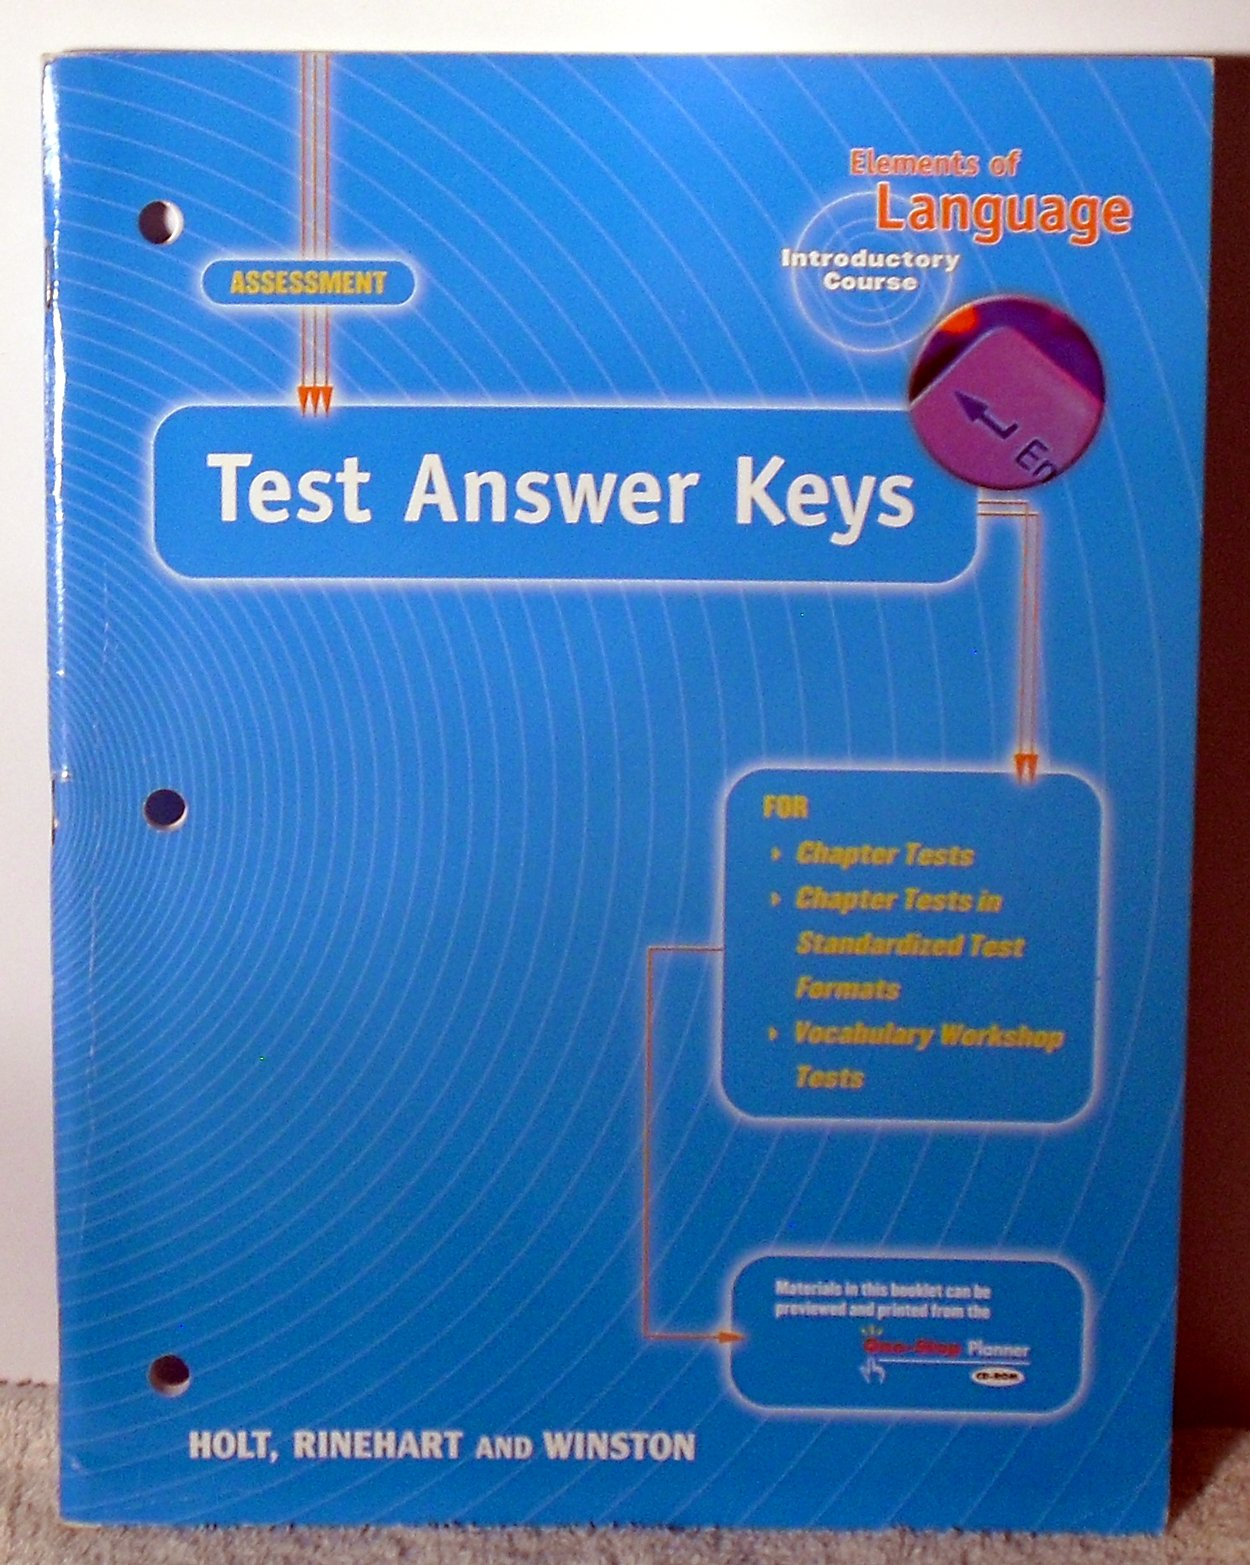 Elements of language introductory course test answer keys elements of language introductory course test answer keys rinehart winston holt 9780030574245 amazon books fandeluxe Image collections